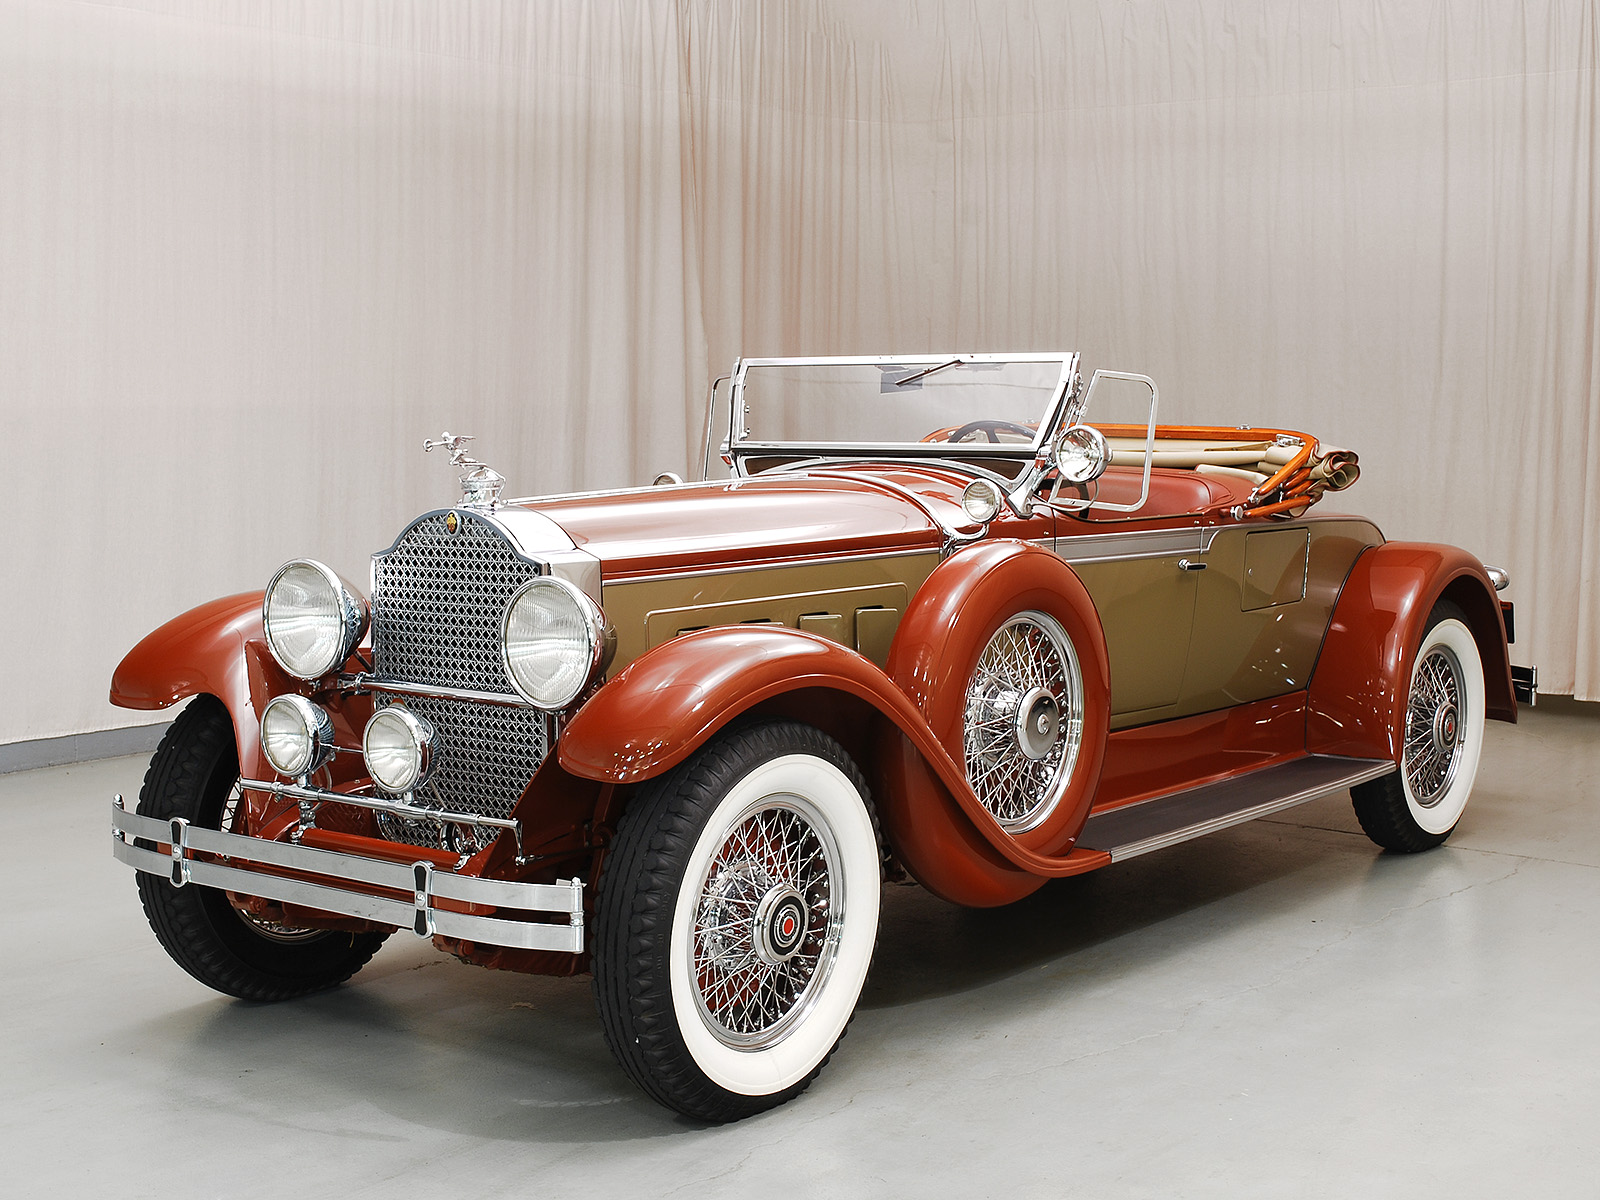 Buying Classic Cars From America